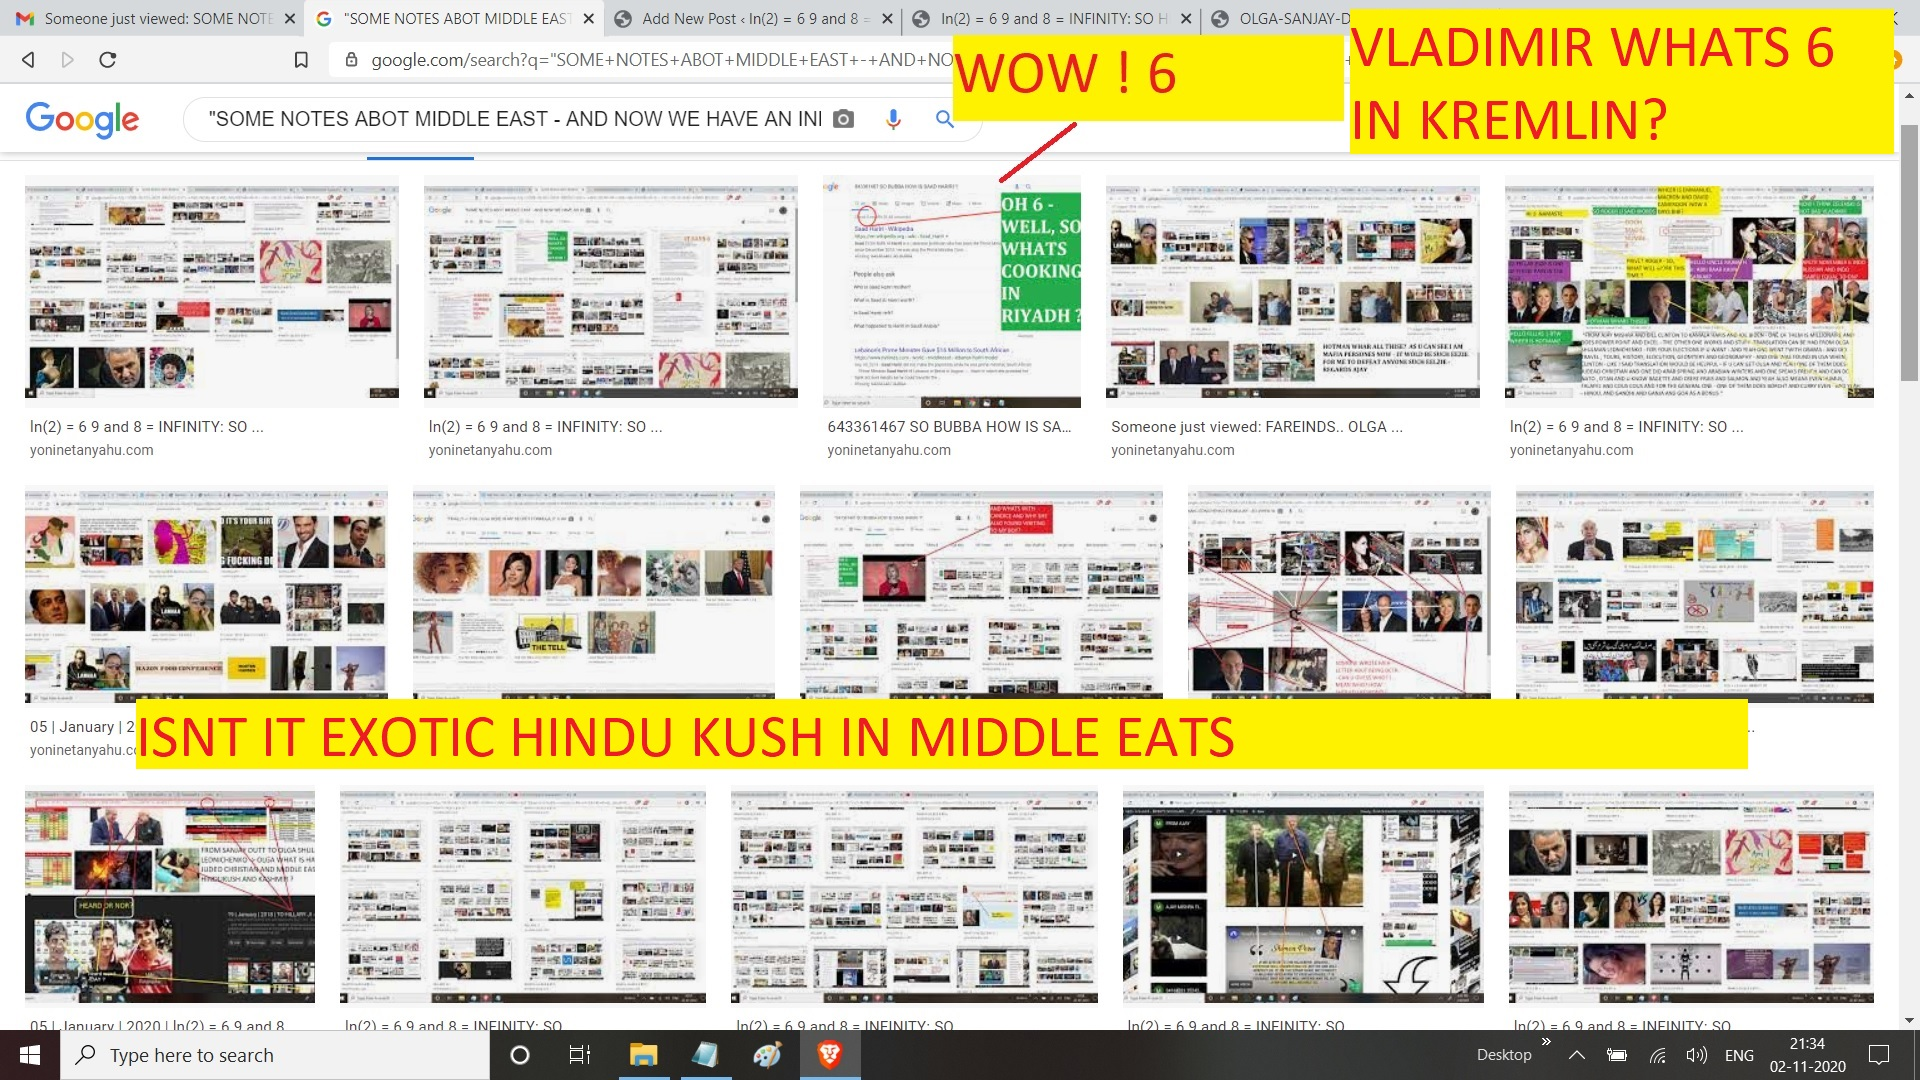 SOME NOTES ABOT MIDDLE EAST - AND NOW WE HAVE AN INDIAN IN IT - SO, HELLO SHIA SUNNI BITCFEST - WELCOME TO HINDUKUSH AND HINDU FEST